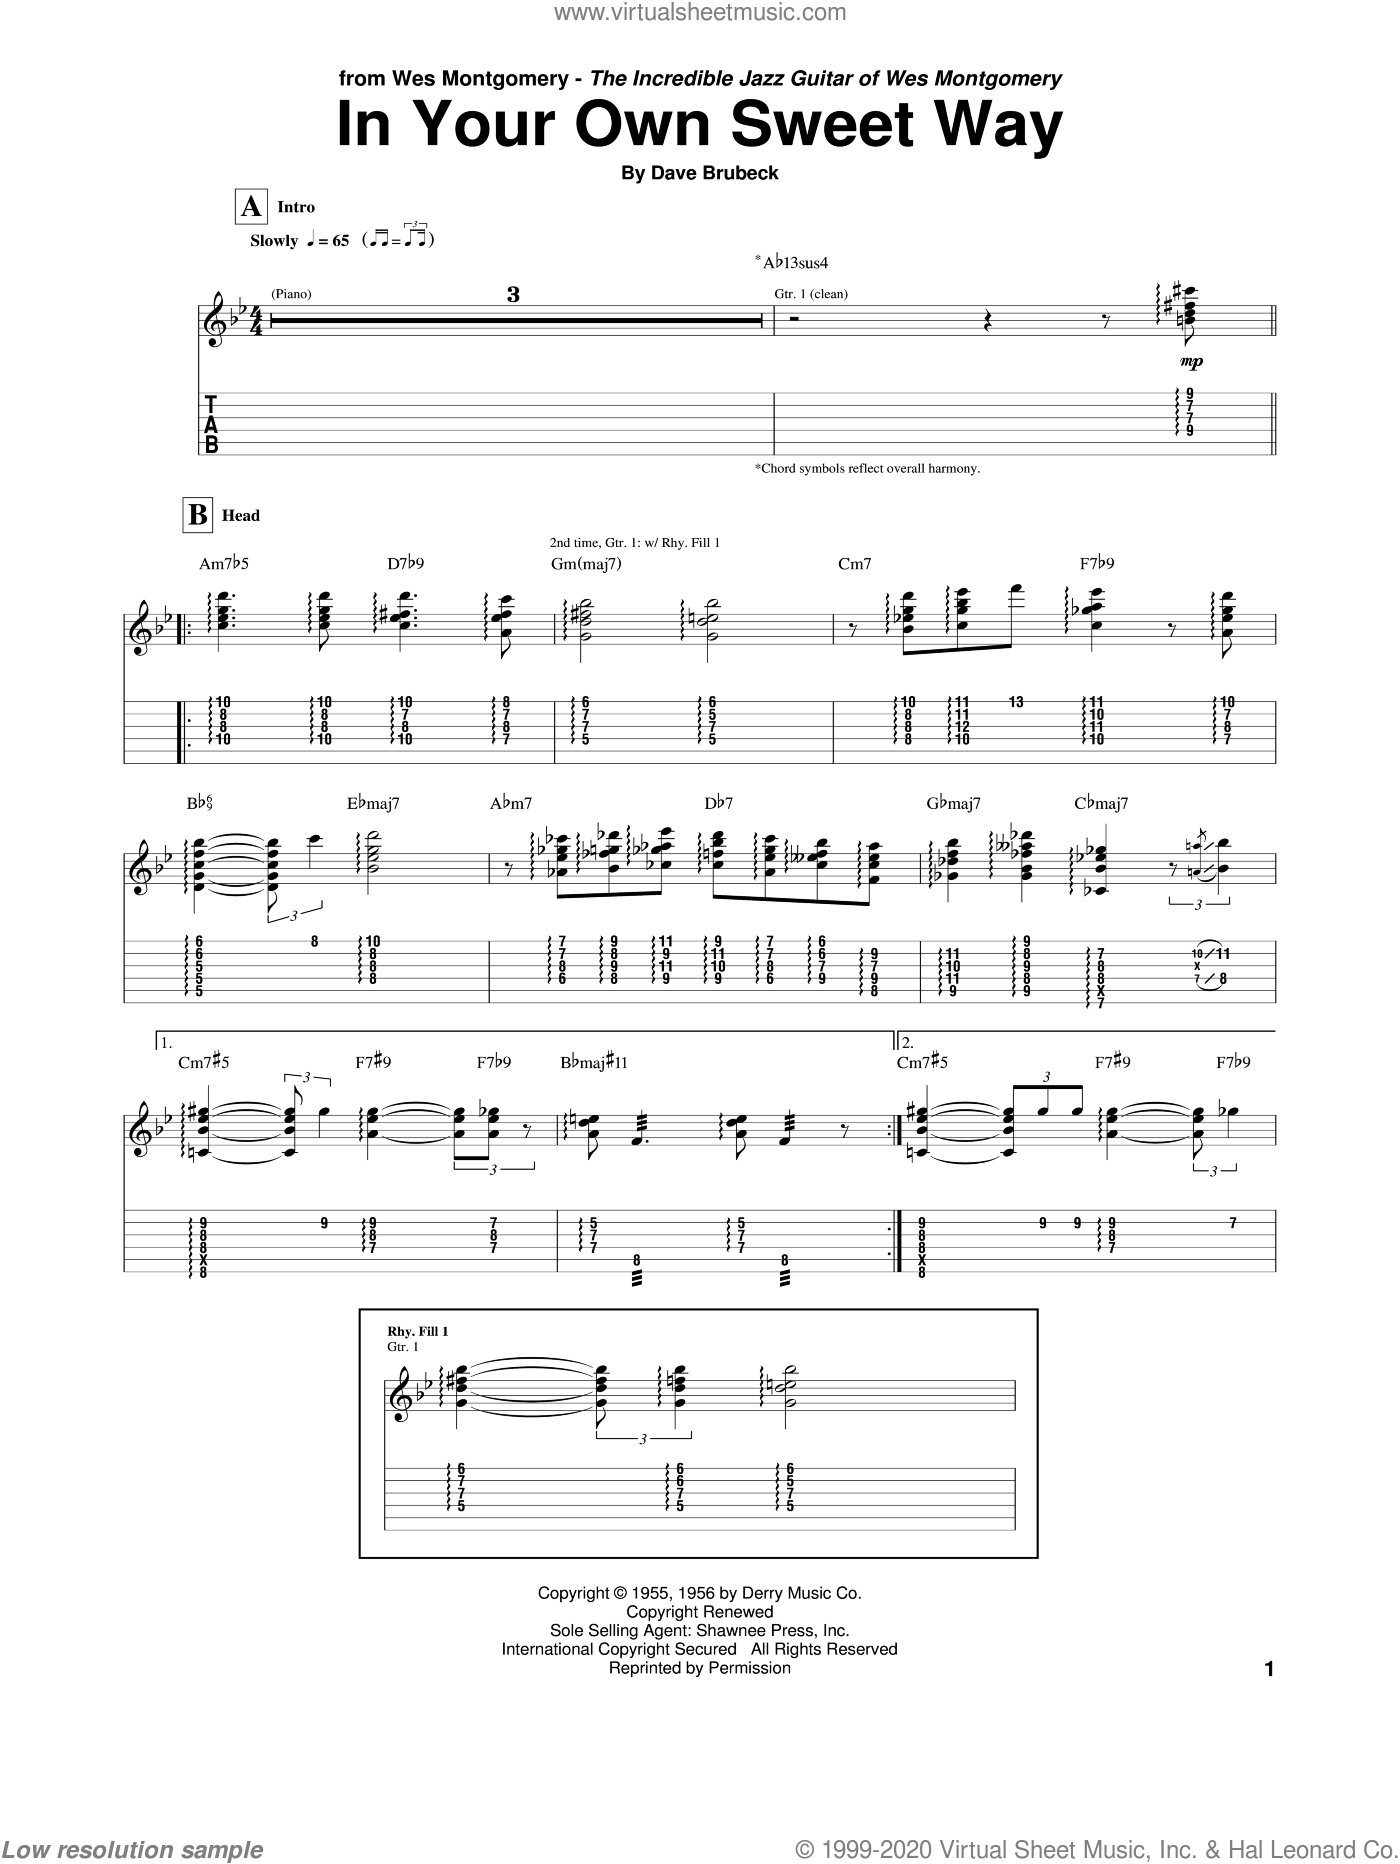 In Your Own Sweet Way sheet music for guitar (tablature) by Wes Montgomery